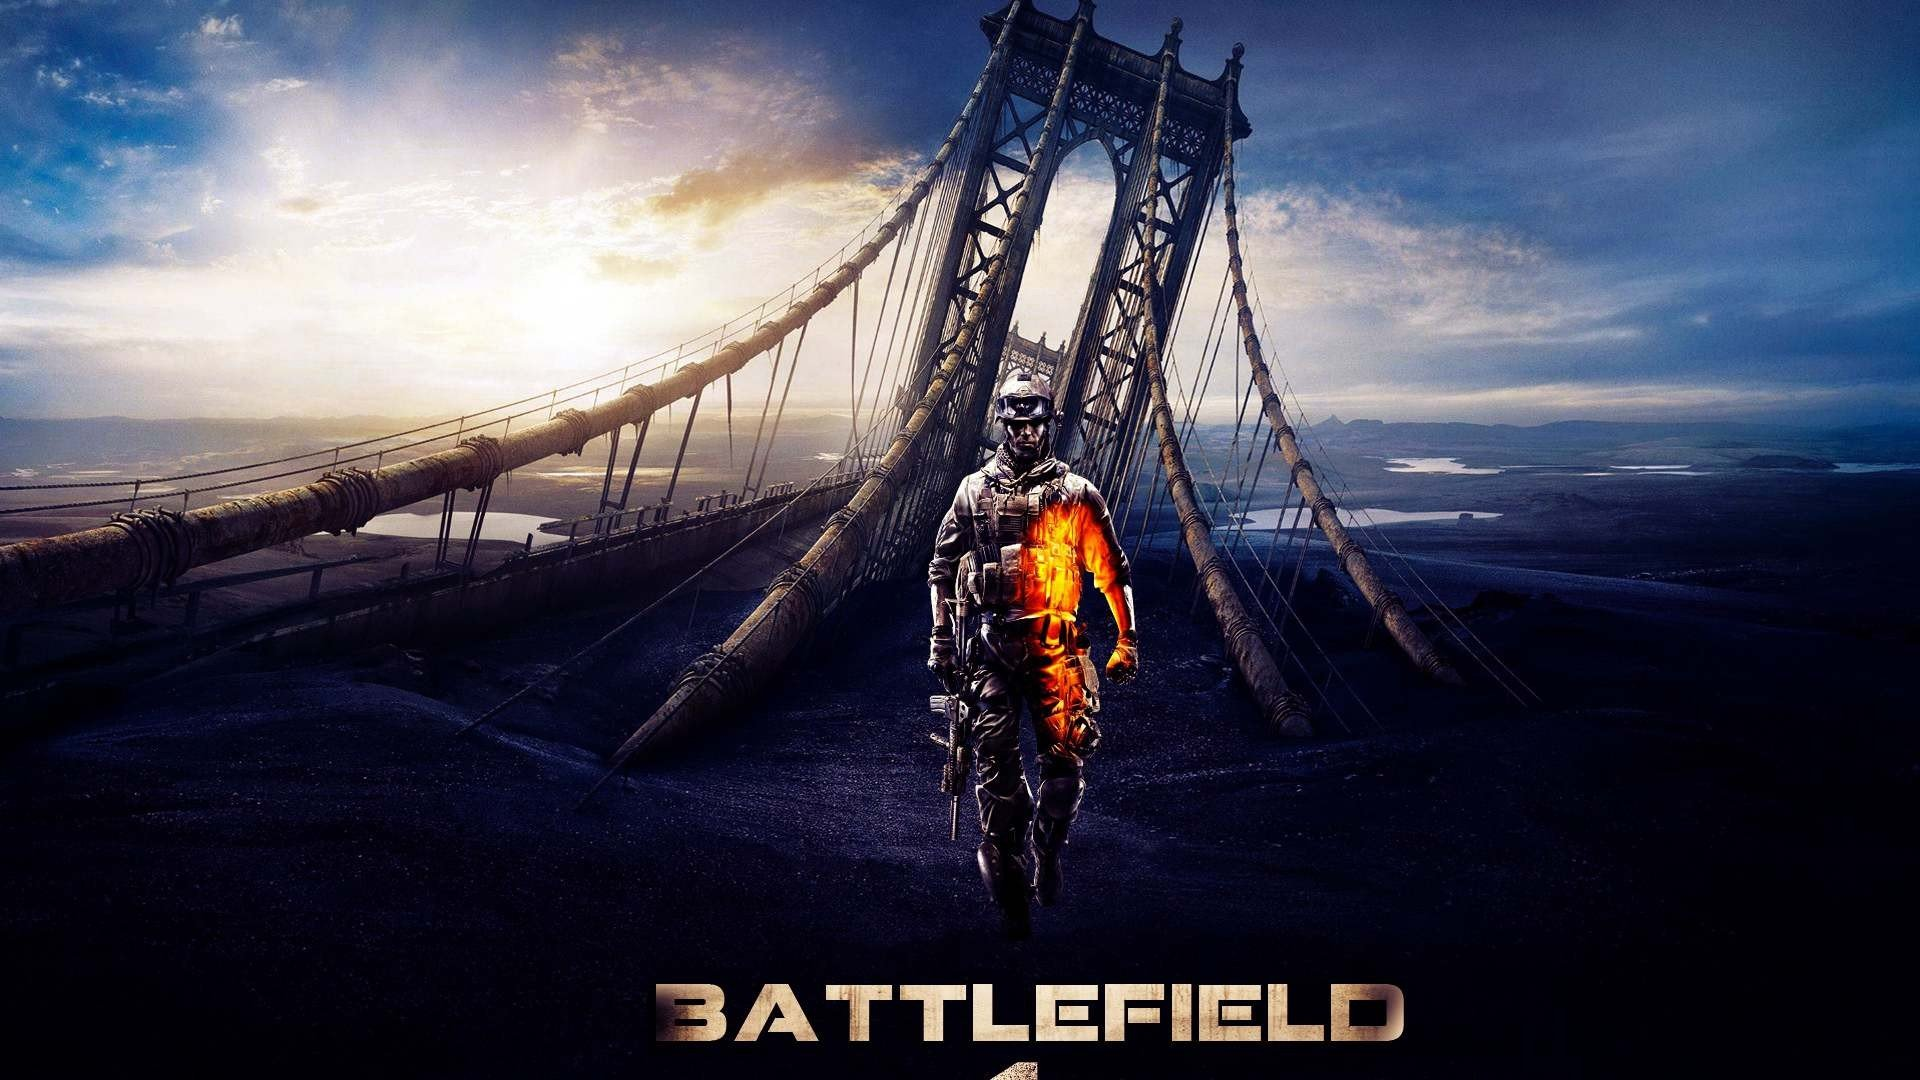 Games Battlefield High Resolution Wallpaper Photos New 1920x1080